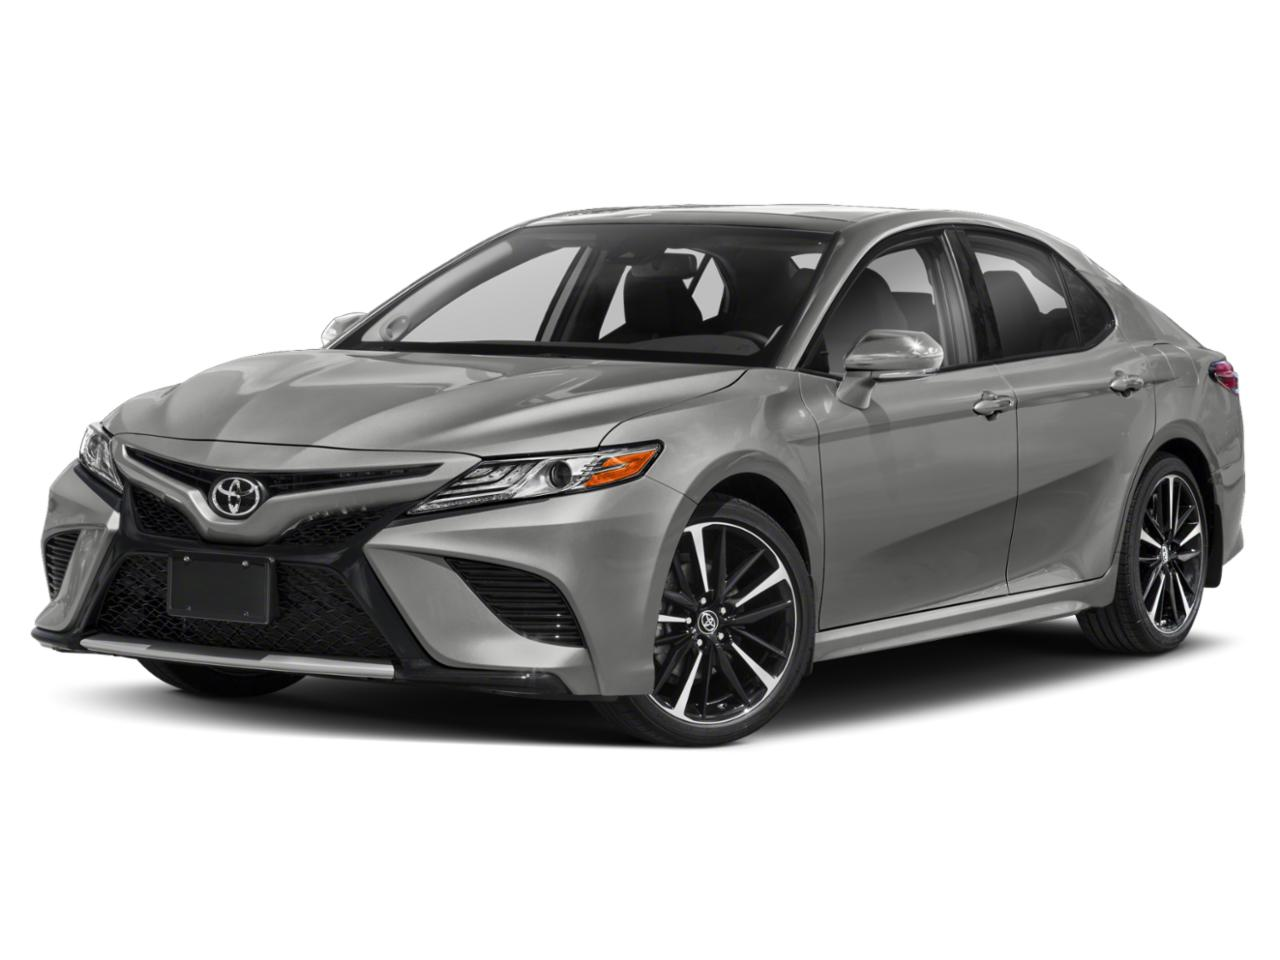 2019 Toyota Camry Vehicle Photo in Gulfport, MS 39503